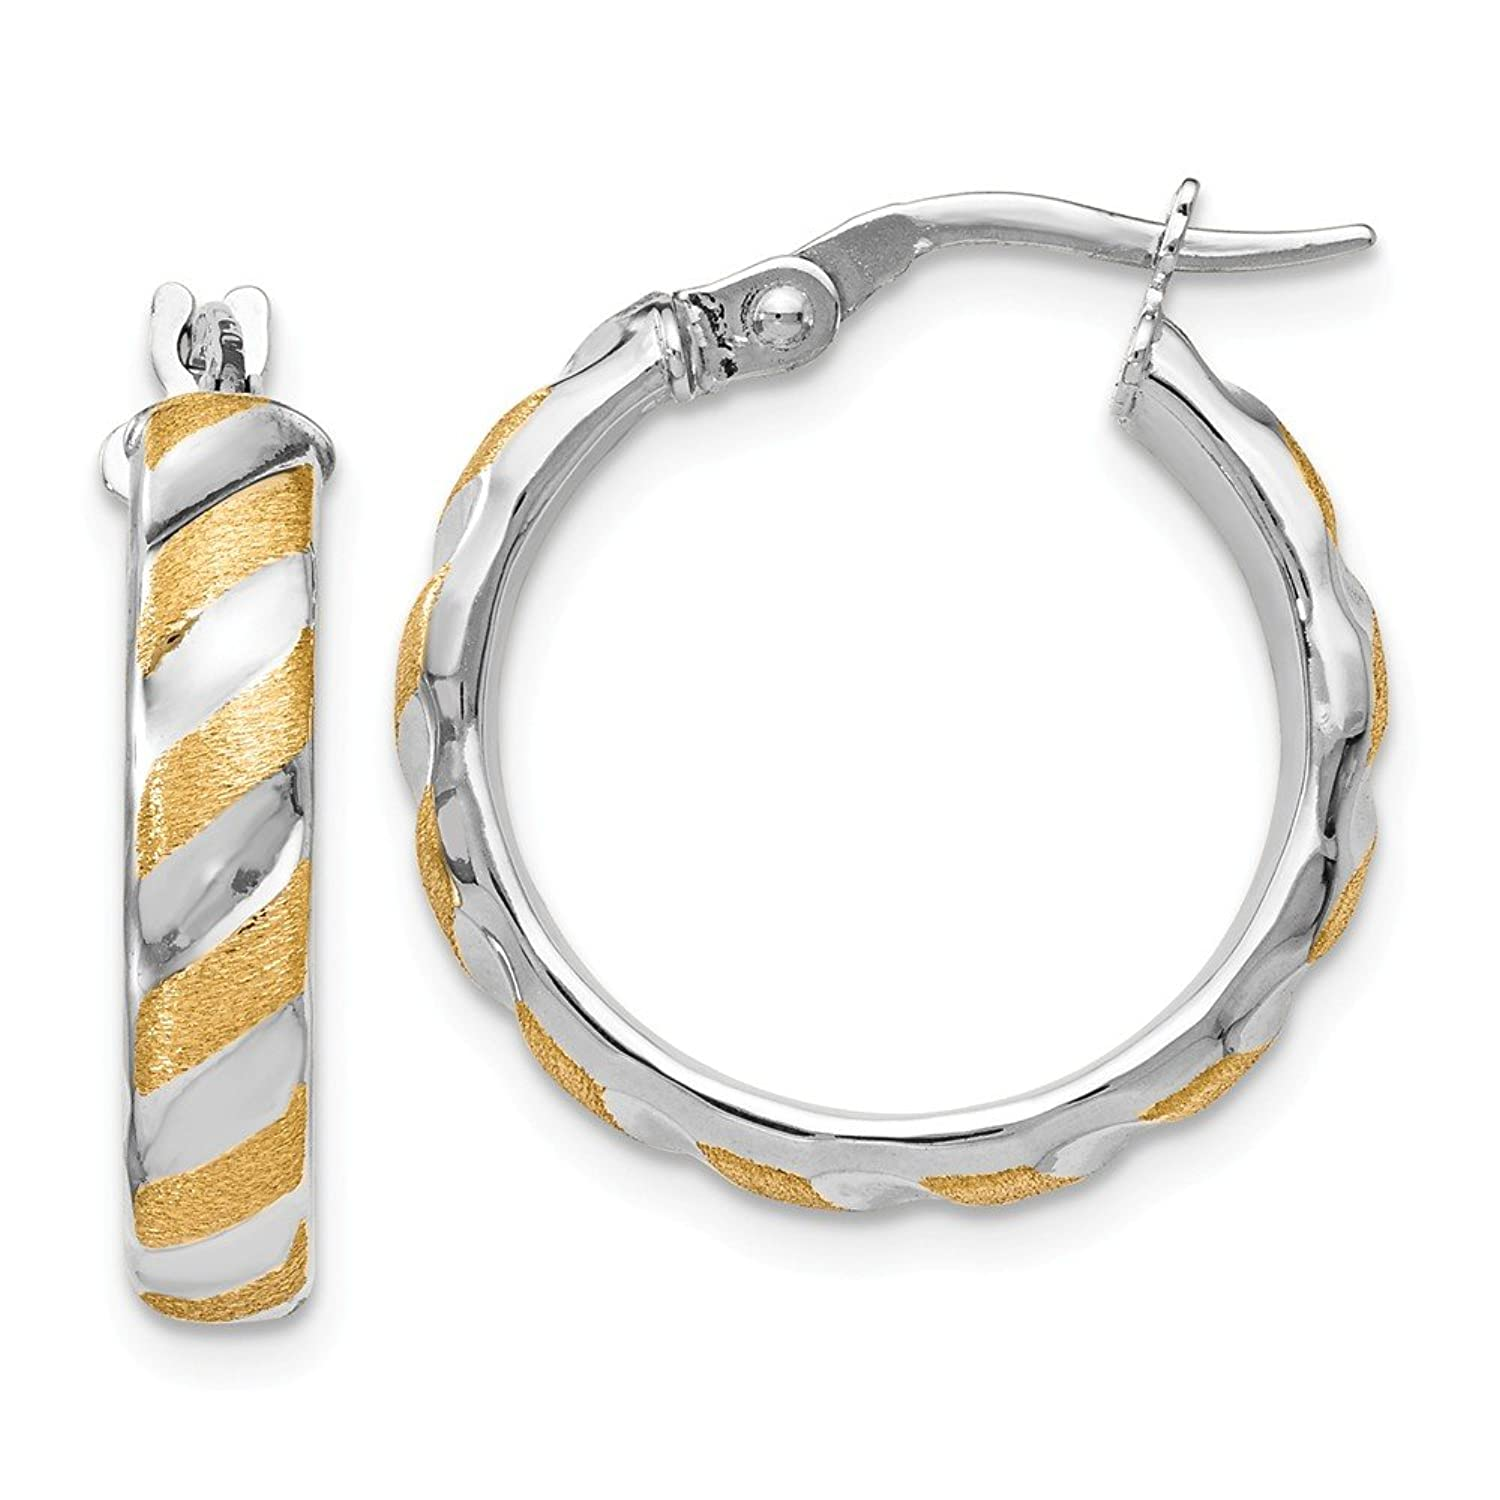 Best Birthday Gift Leslies 14k White Gold with Yellow Polished Textured Hoops